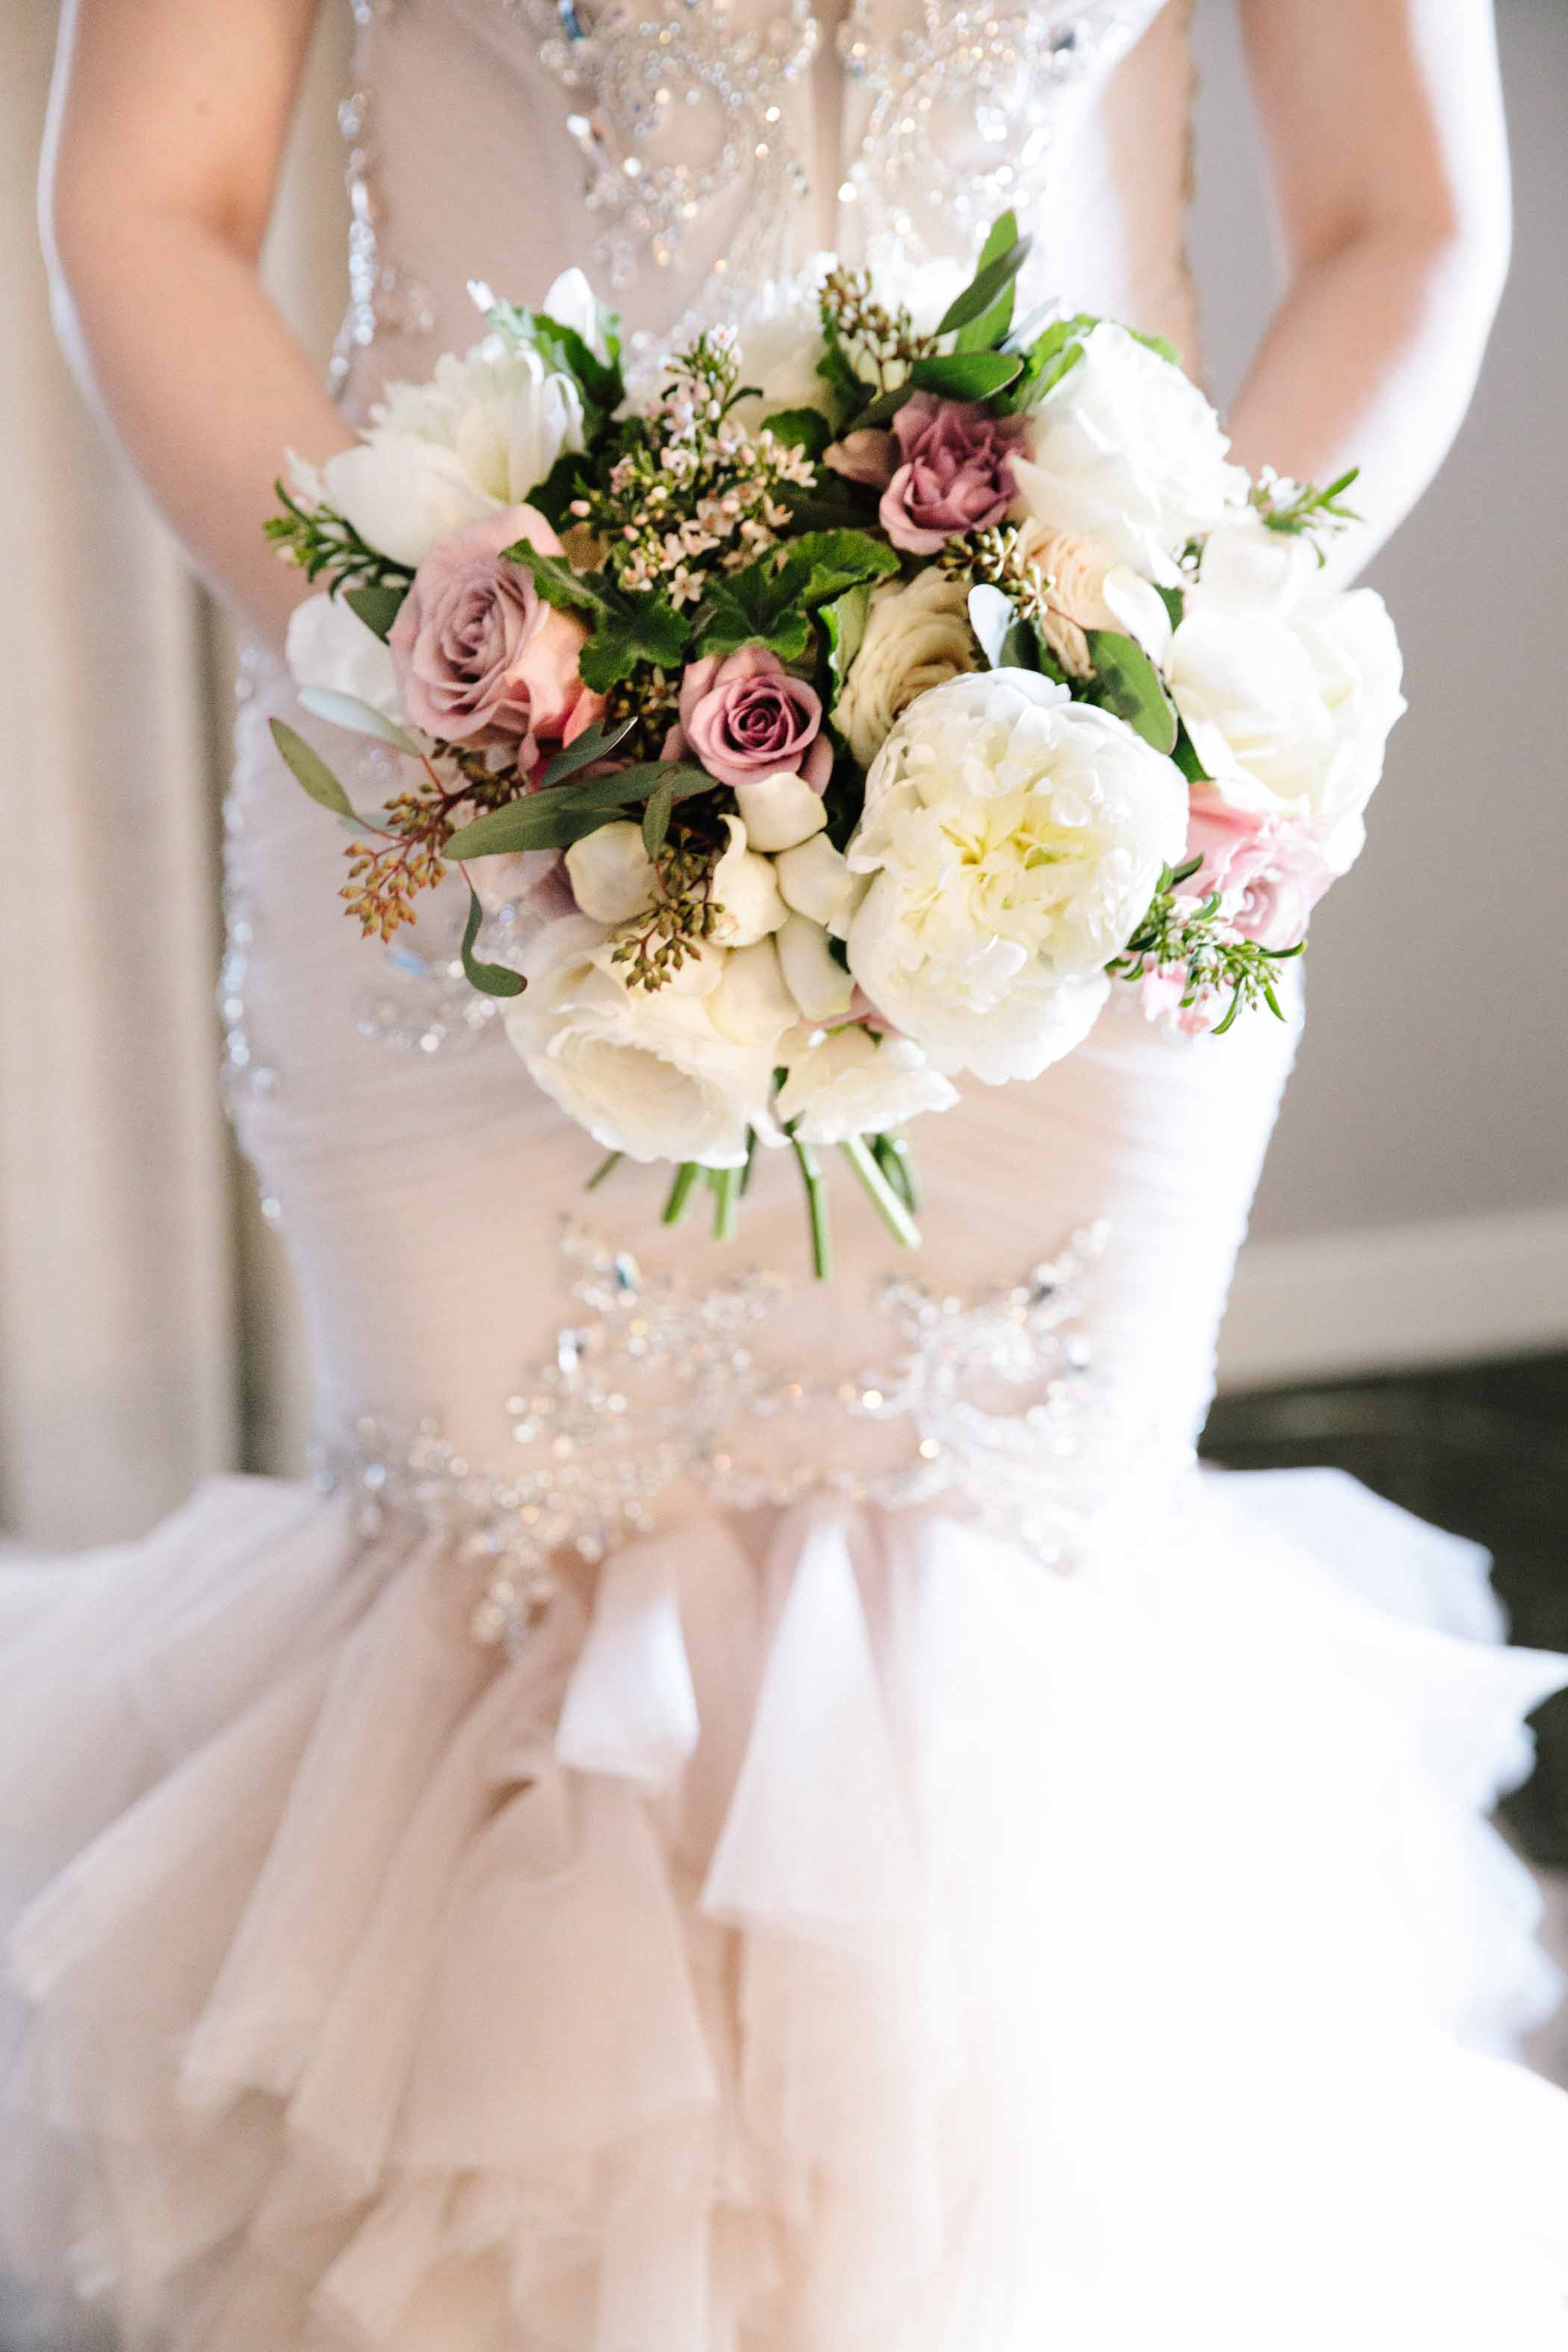 Bride in white dress holding spring garden bouquet.